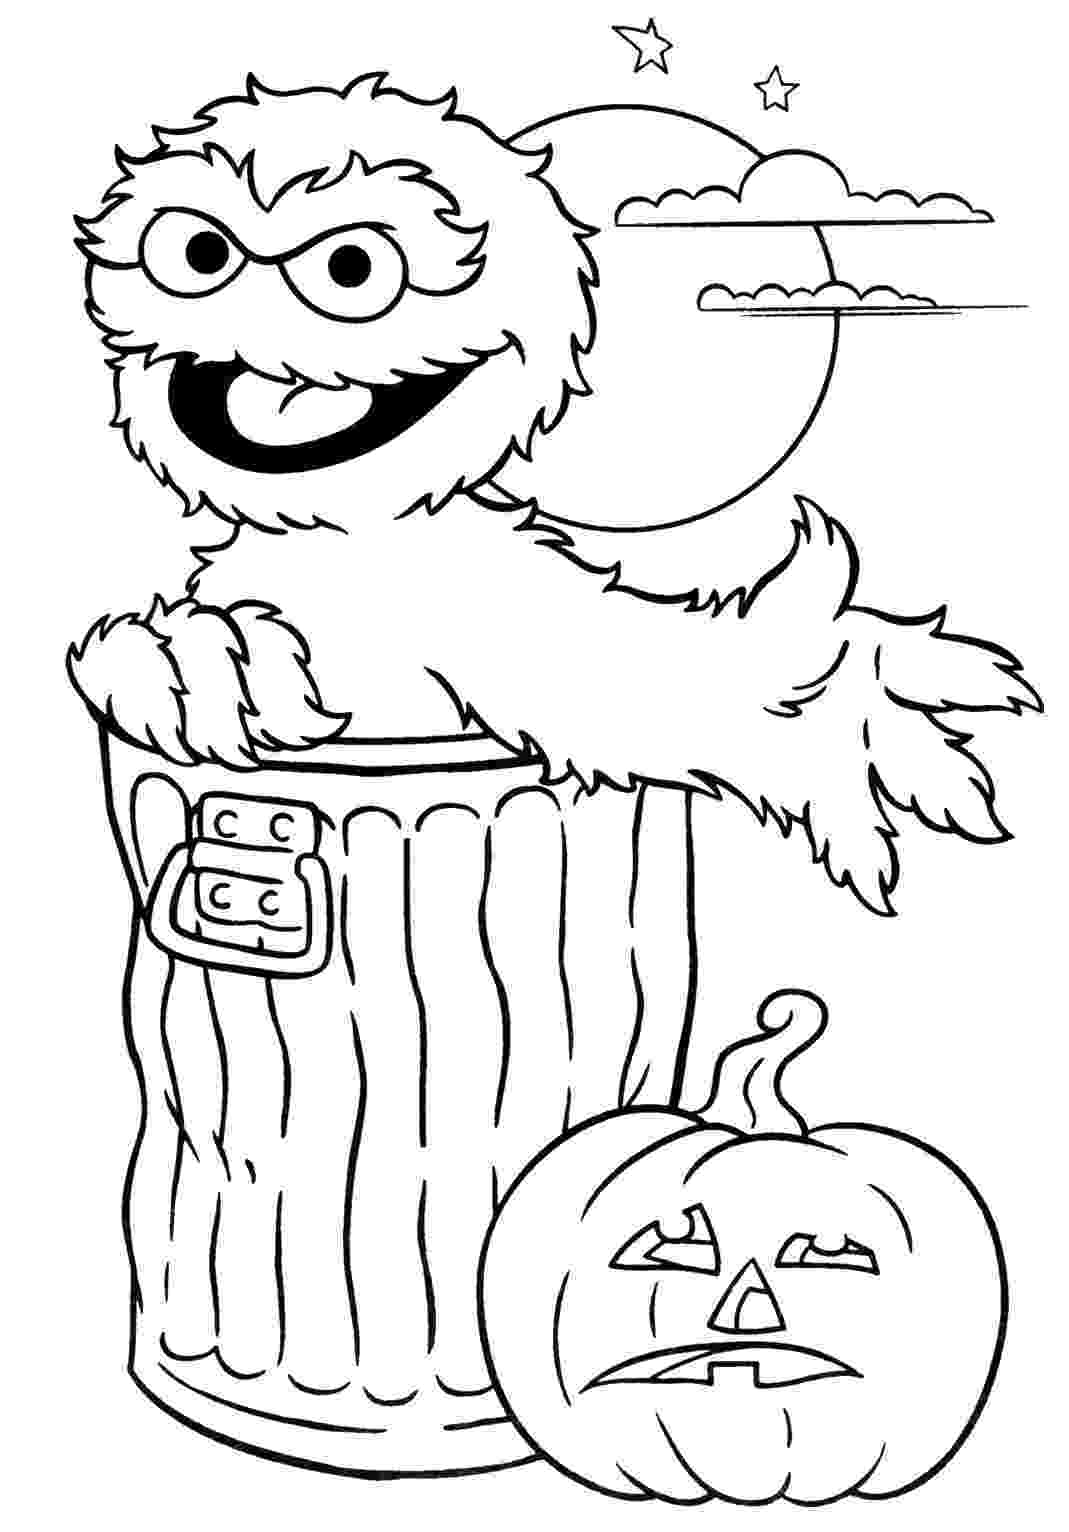 coloring halloween pages cute witch halloween coloring page fun coloring instant halloween coloring pages